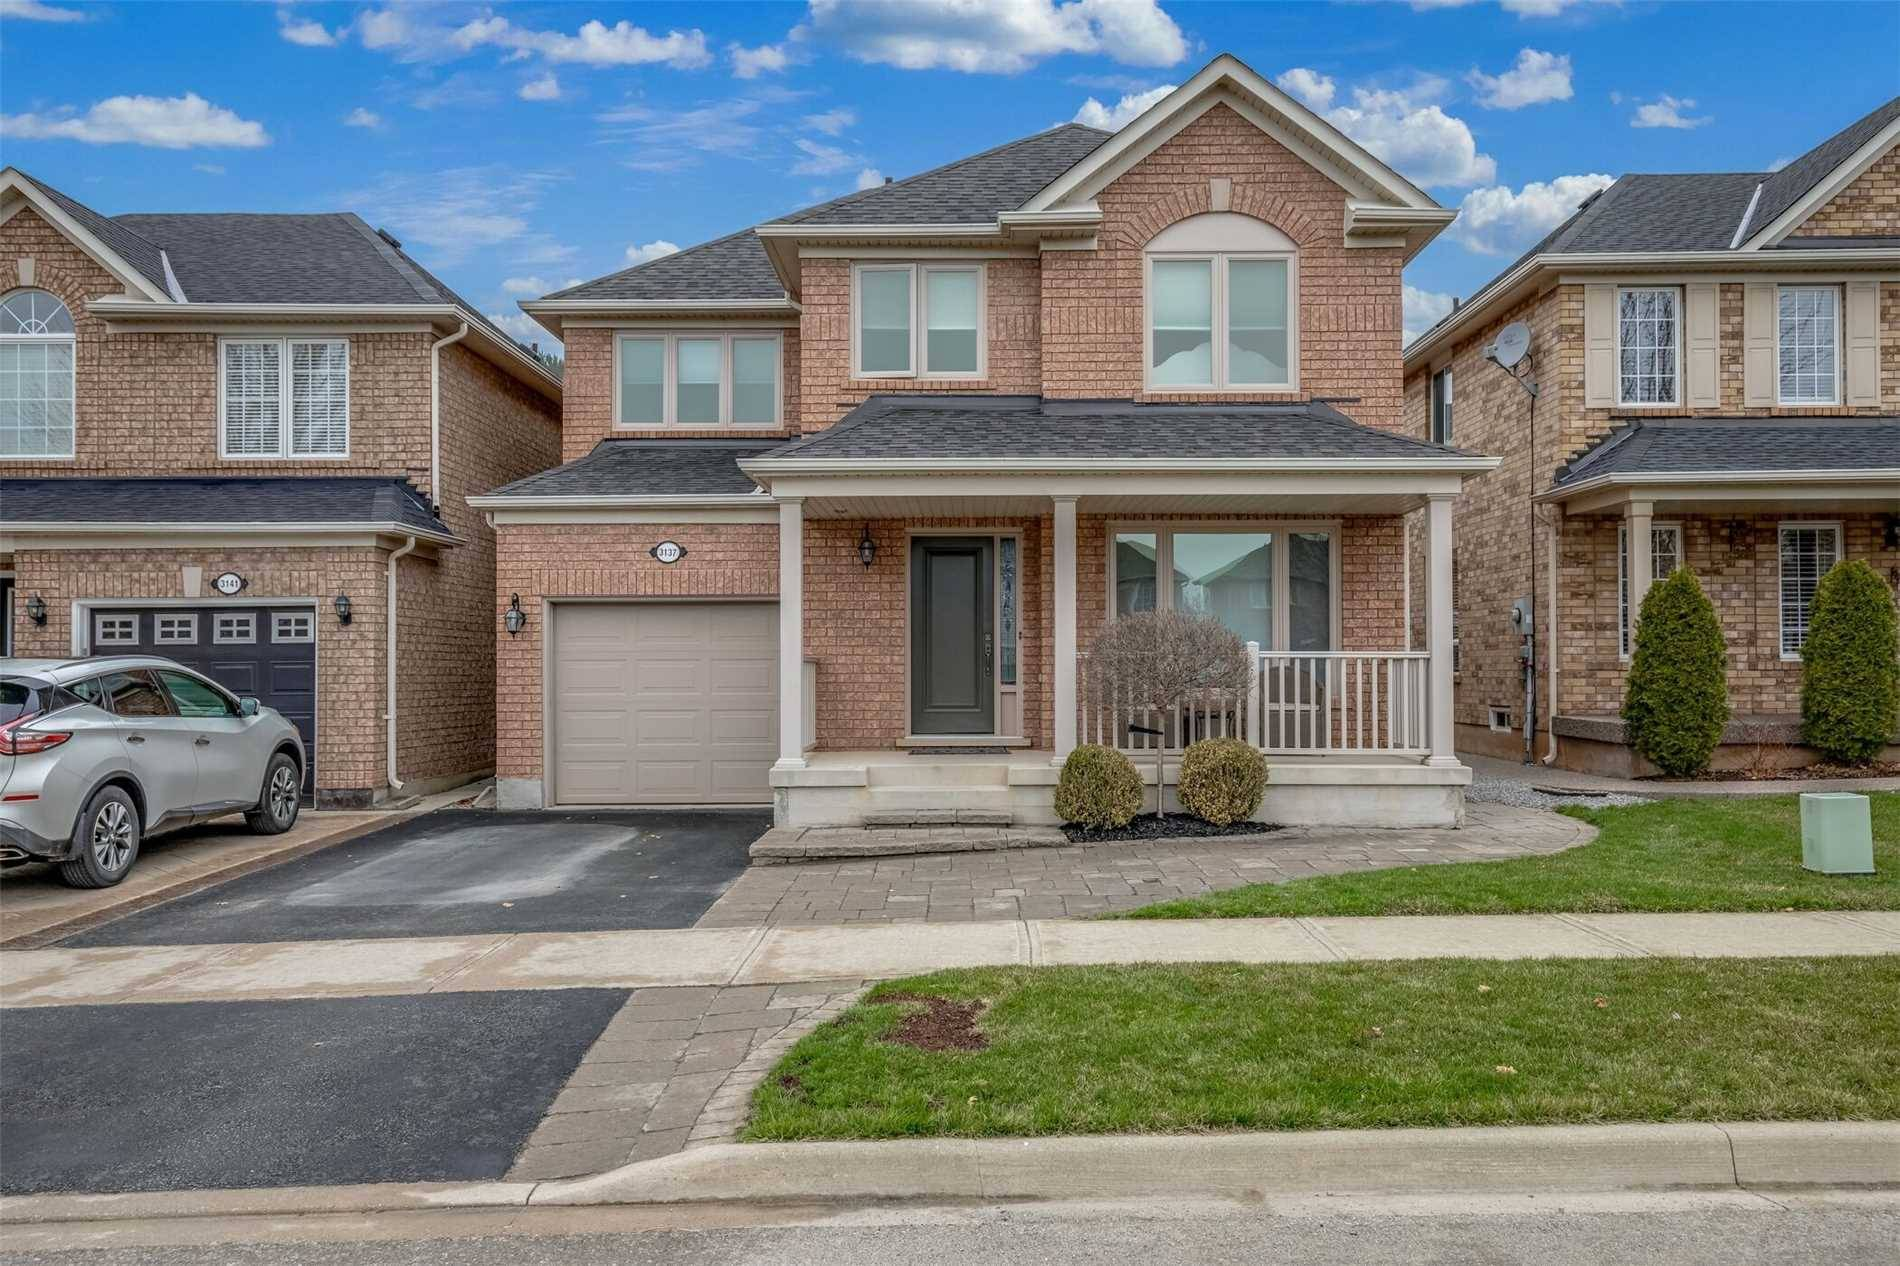 House for sale at 3137 Abernathy Wy Oakville Ontario - MLS: W4425361